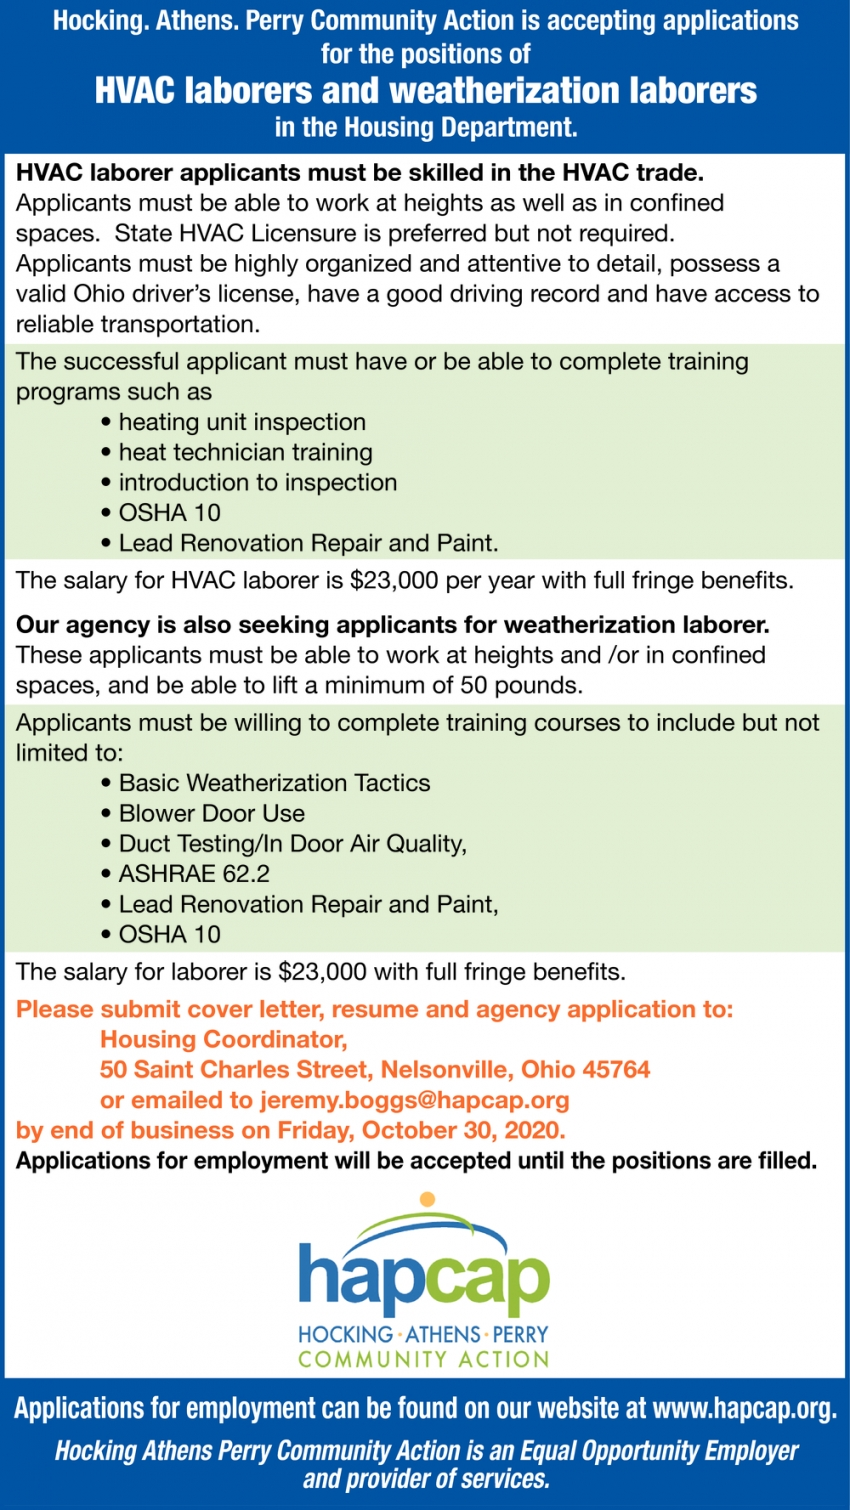 HVAC Laborers And Weatherization Laborers